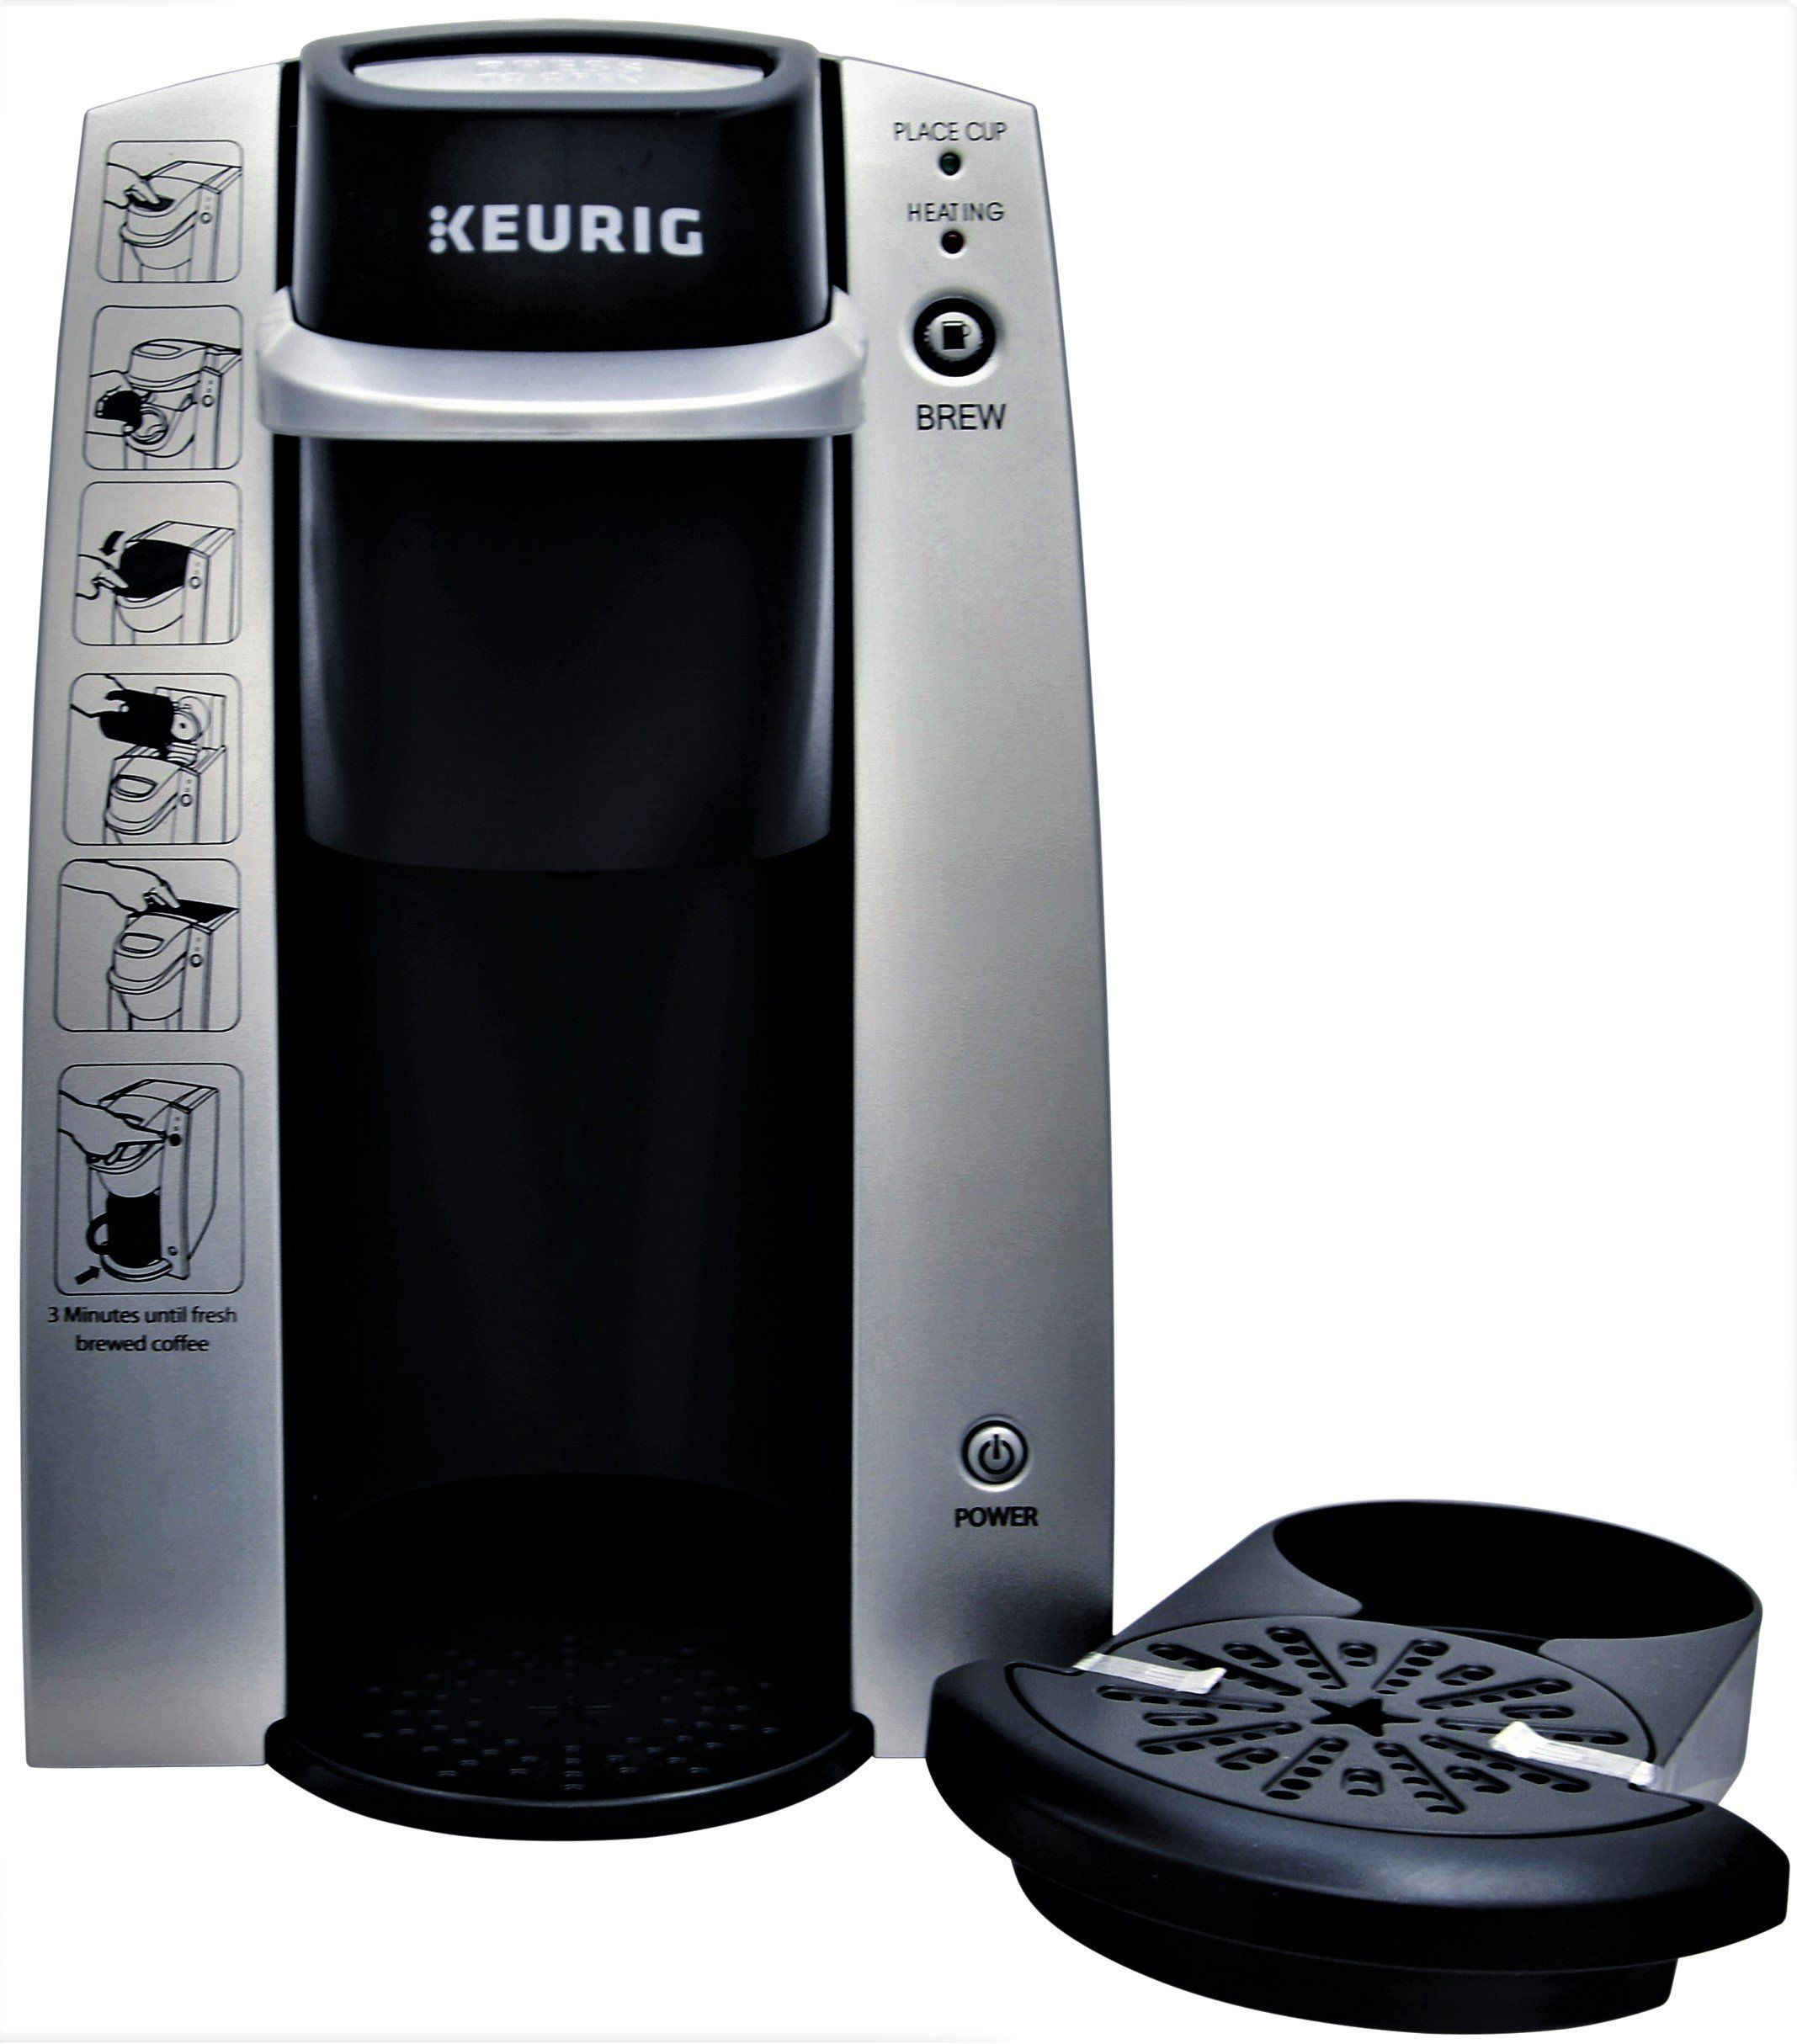 Keurig Kcup In Room Brewing System 11 1 X 10inches You Can